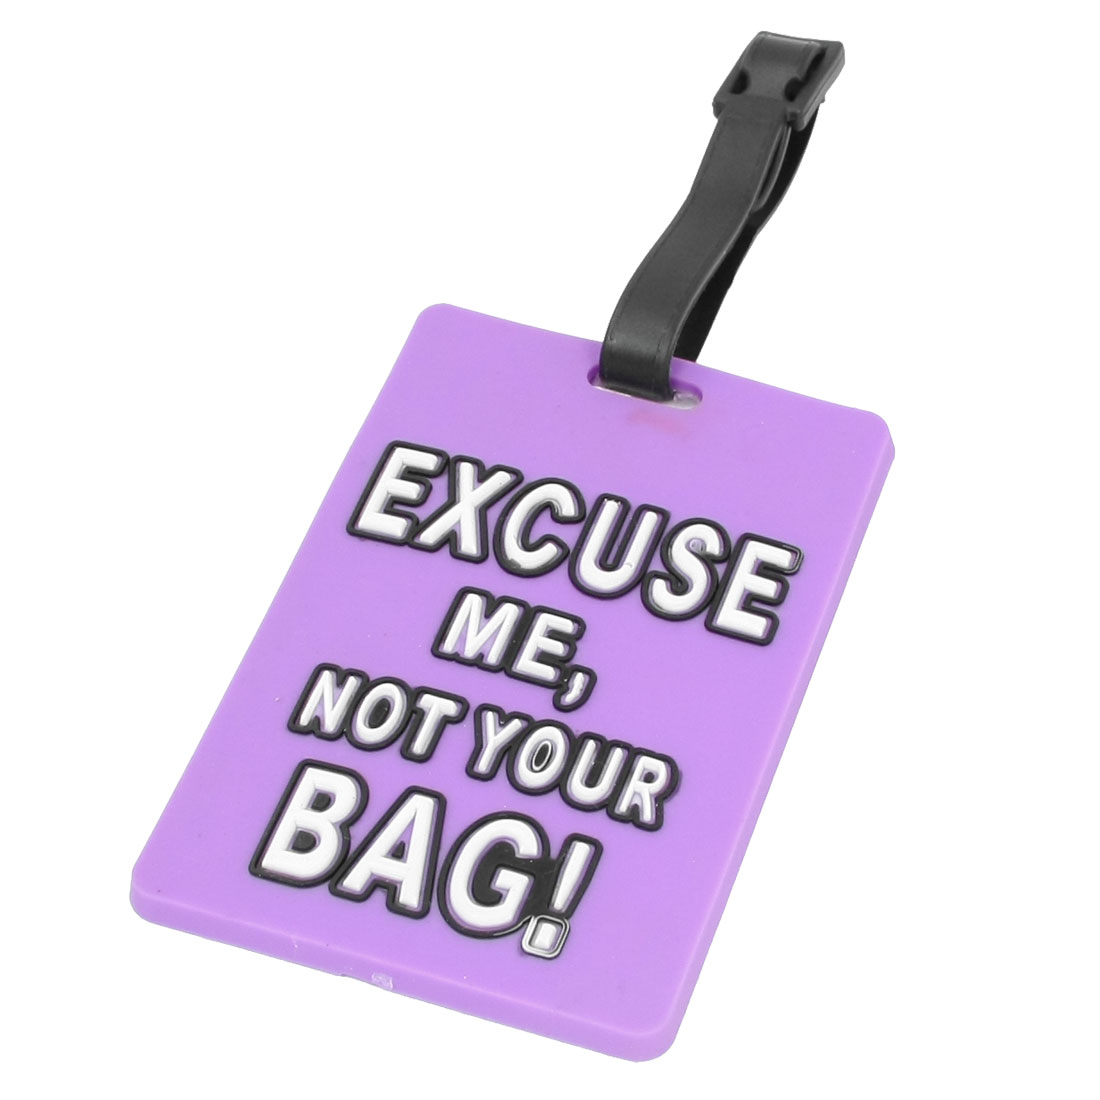 Purple Soft Plastic Excuse Me, Not Your Bag Print Name Address Label Luggage Tag